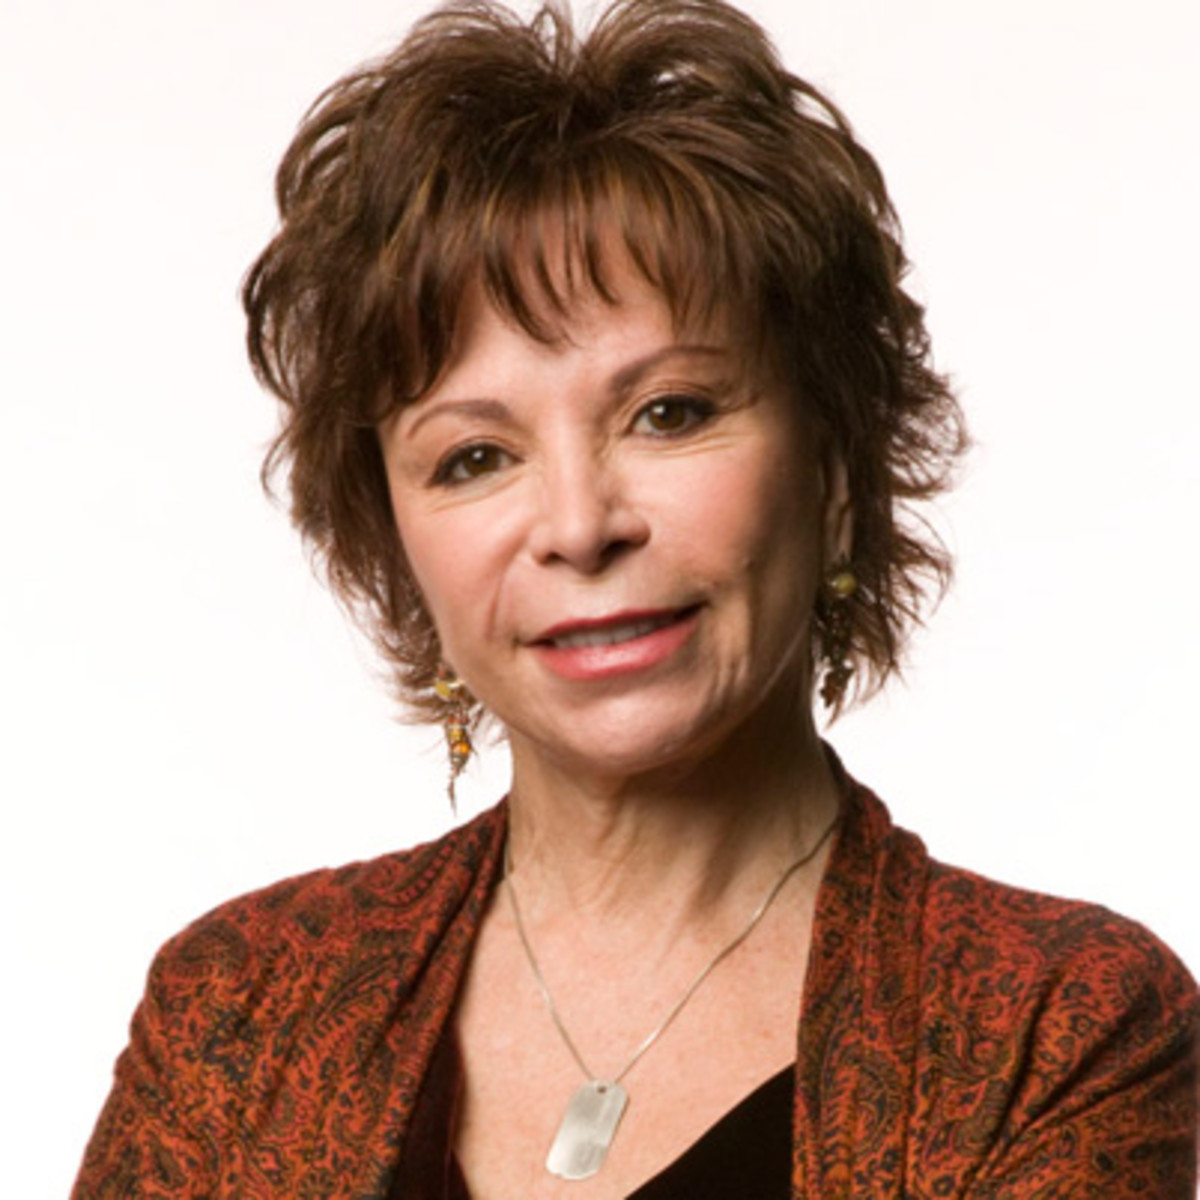 Libro Paula De Isabel Allende Isabel Allende Author Biography